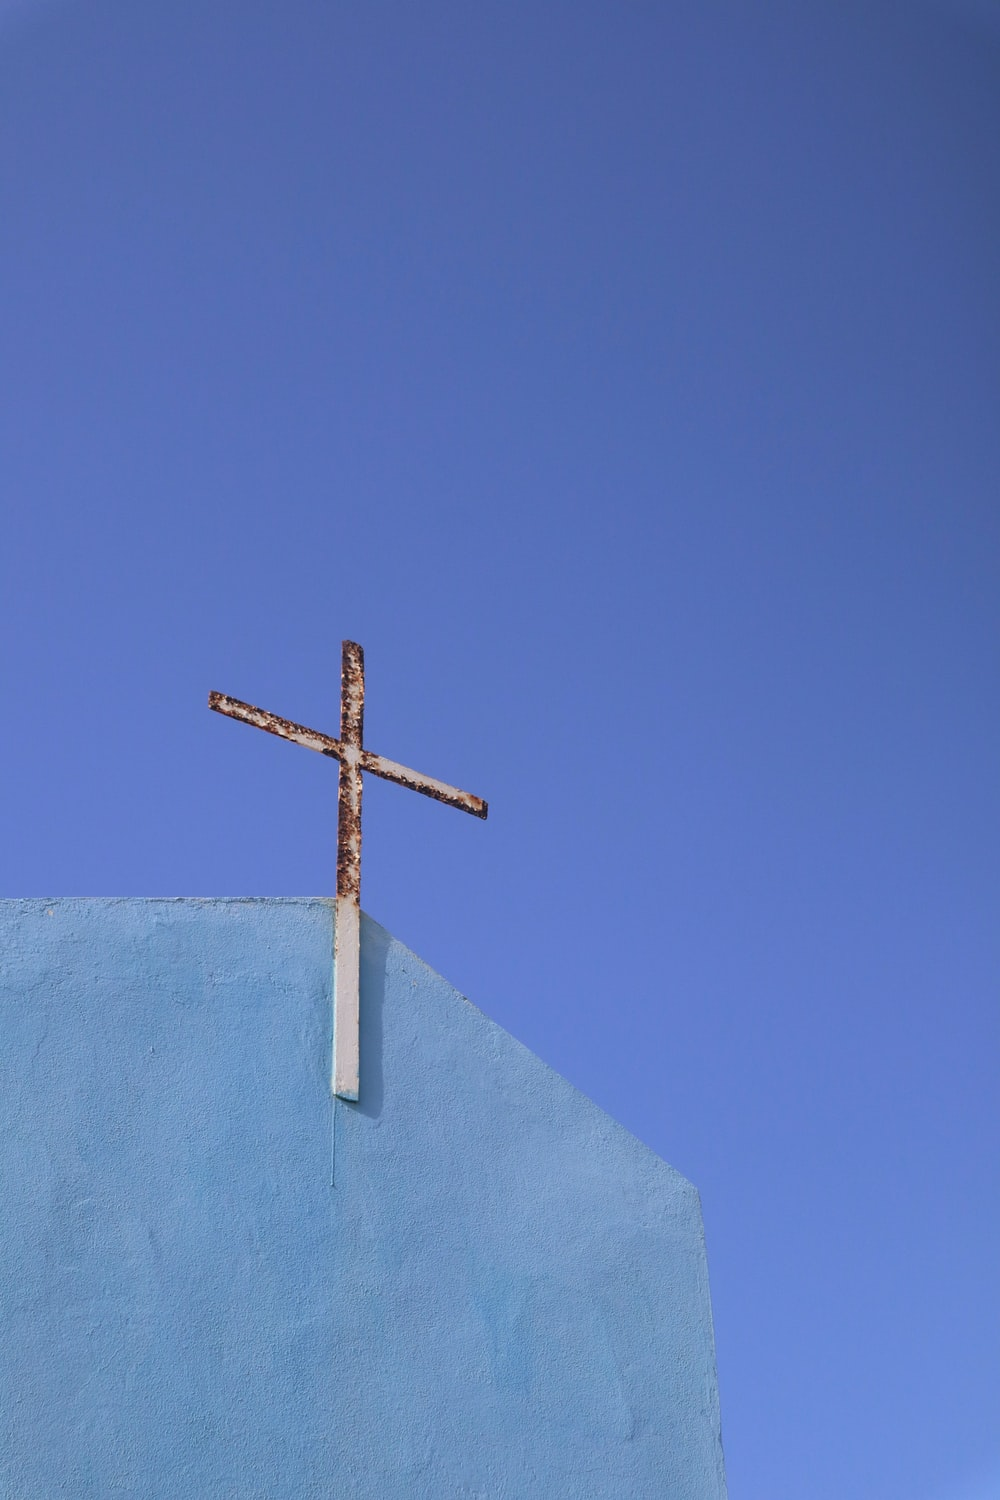 brown wooden cross on white textile under blue sky during daytime